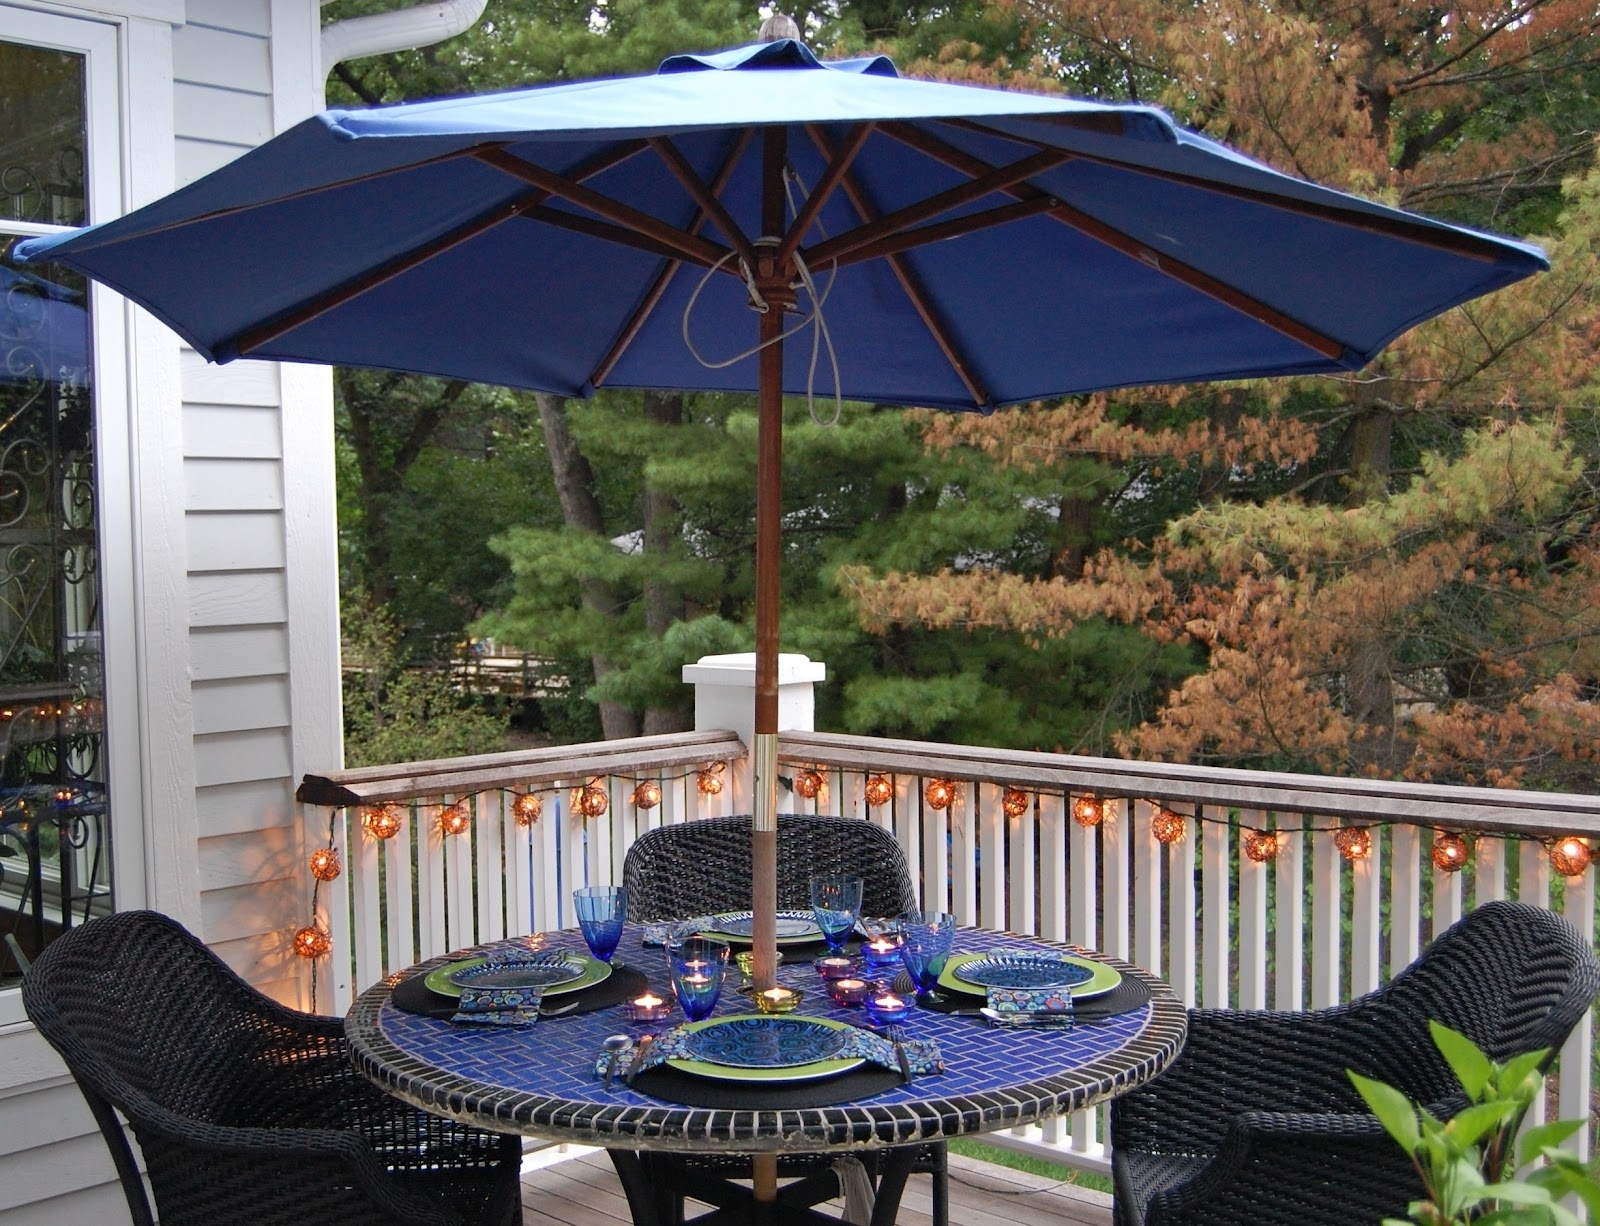 Furniture: Outdoor Outdoor Patio Sets With Umbrella Awesome Design For Well Liked Target Patio Umbrellas (View 5 of 20)